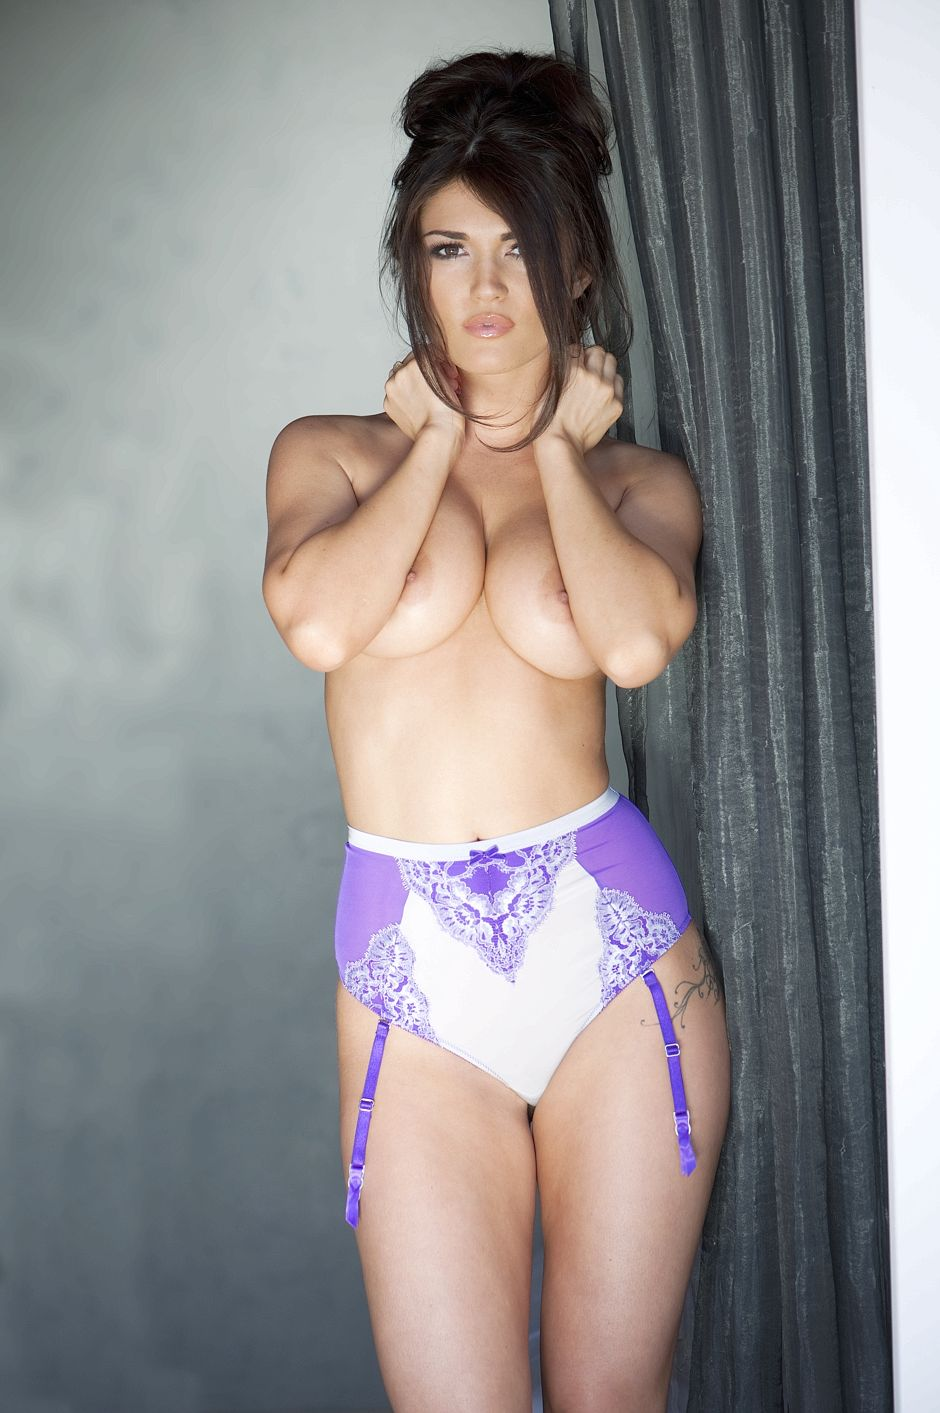 India Reynolds Topless - 2 New Photos new pictures